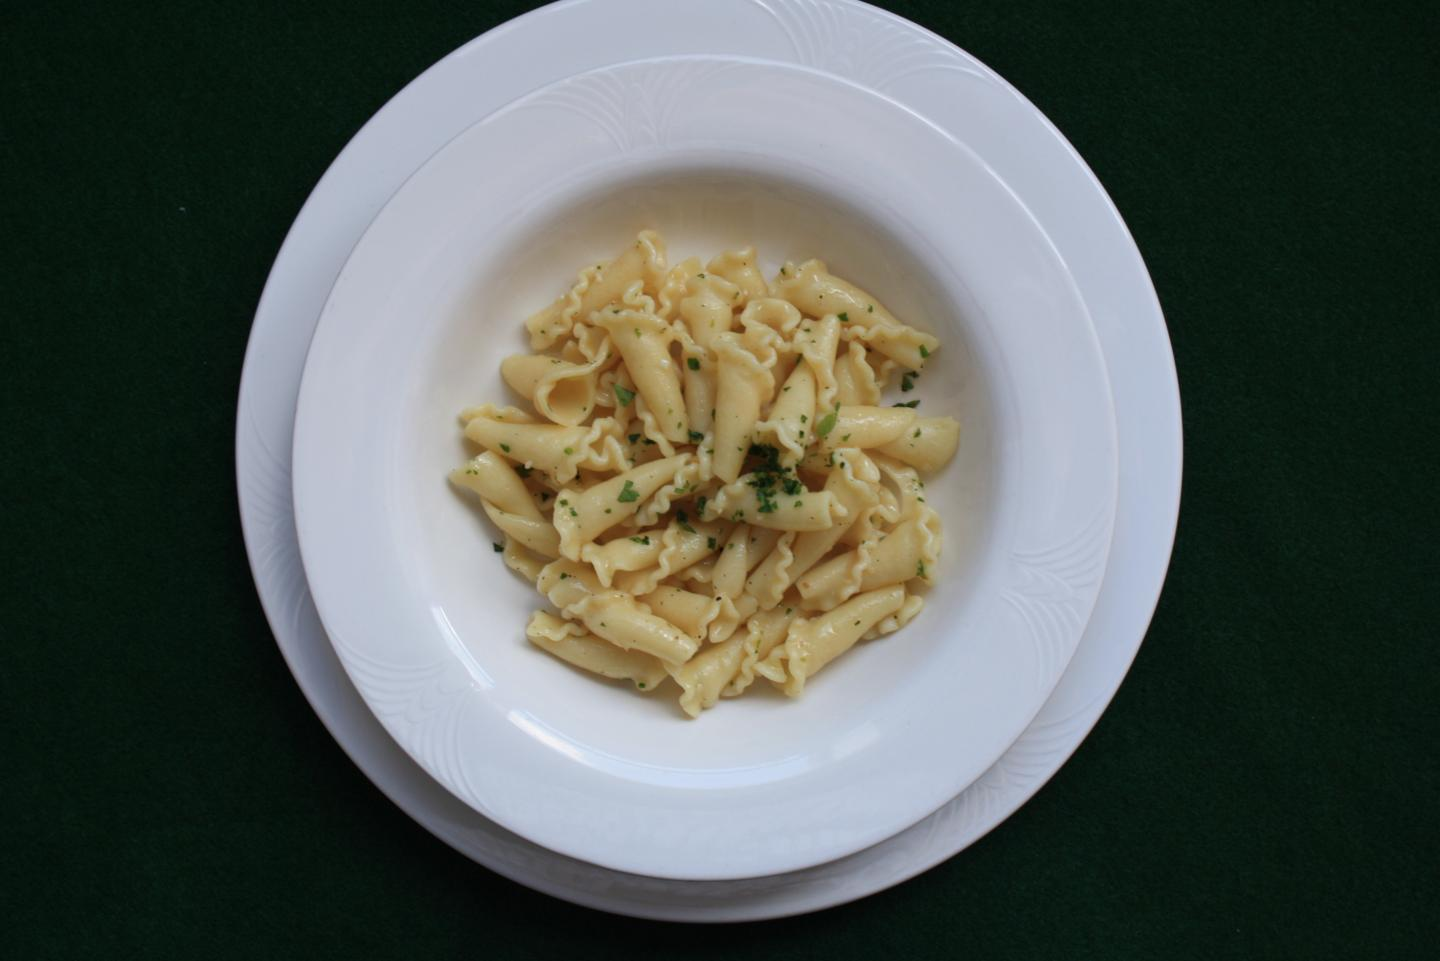 Pasta Dish Used in the Study